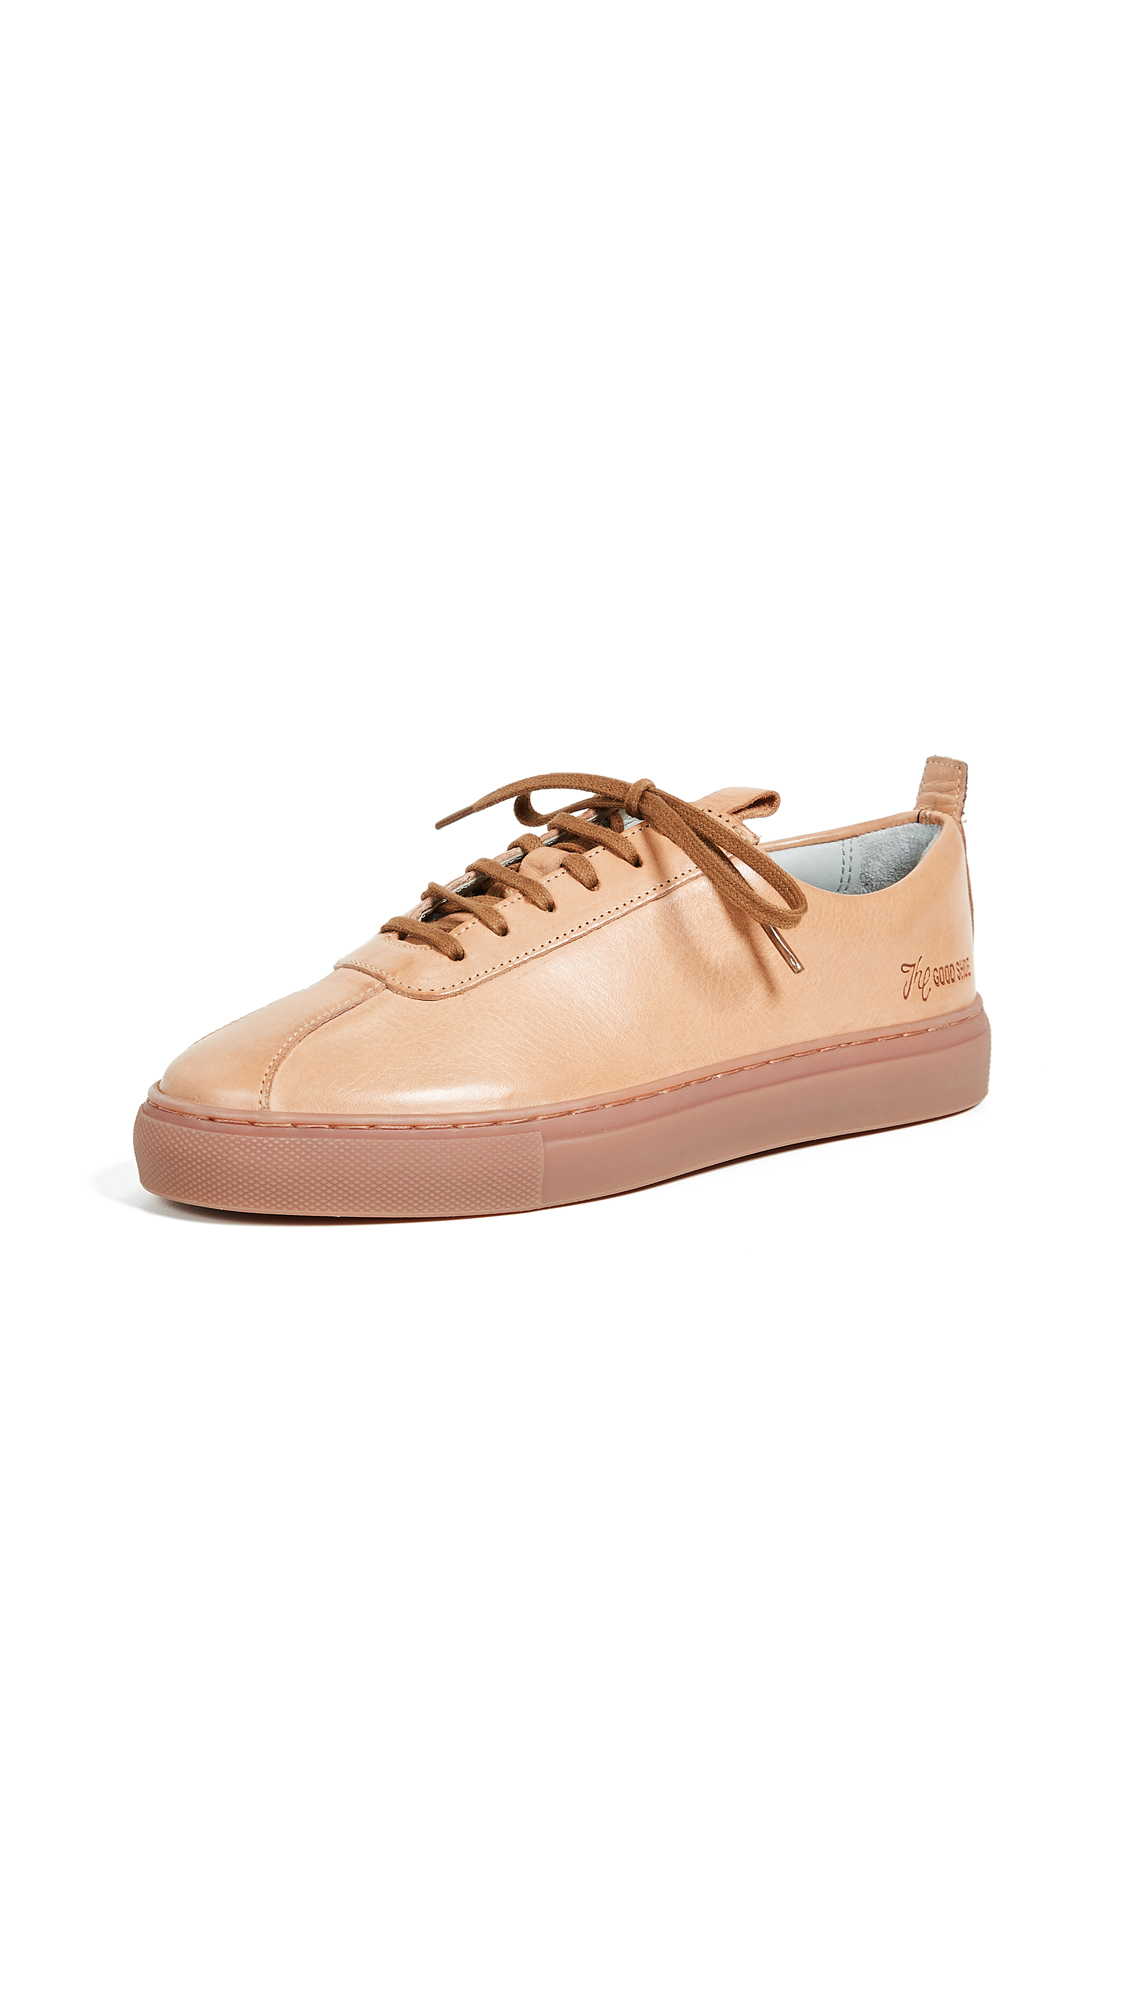 Grenson Leather Sneakers - Cuoio Calf